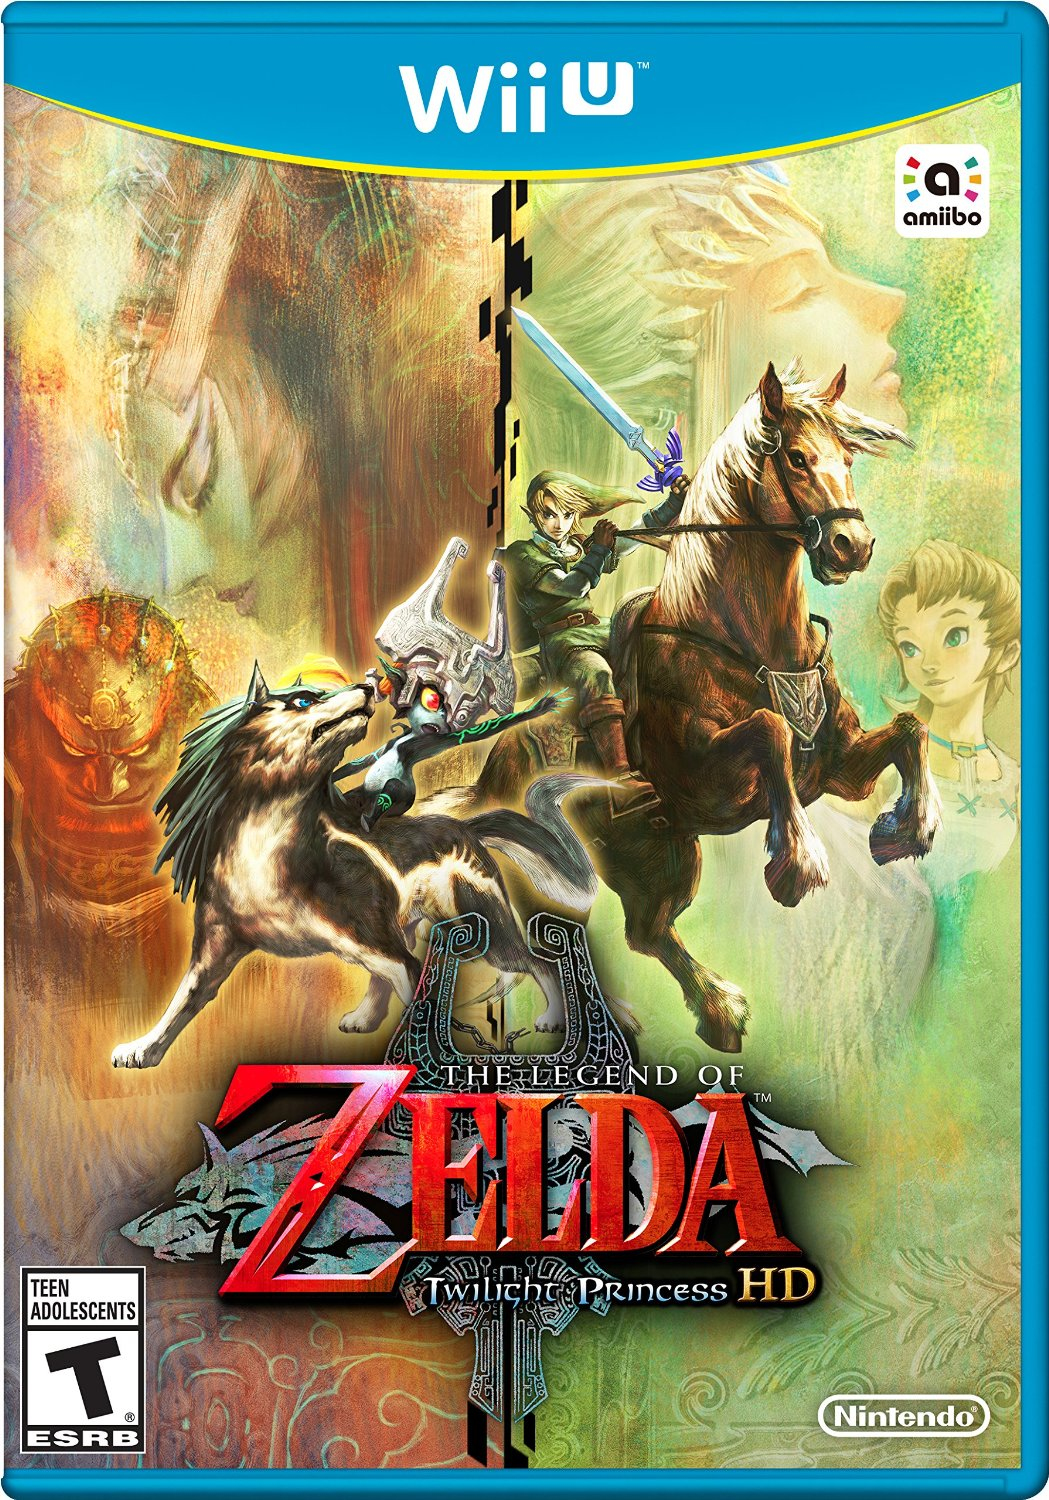 Nintendo THE LEGEND OF ZELDA: TWILIGHT PRINCESS HD